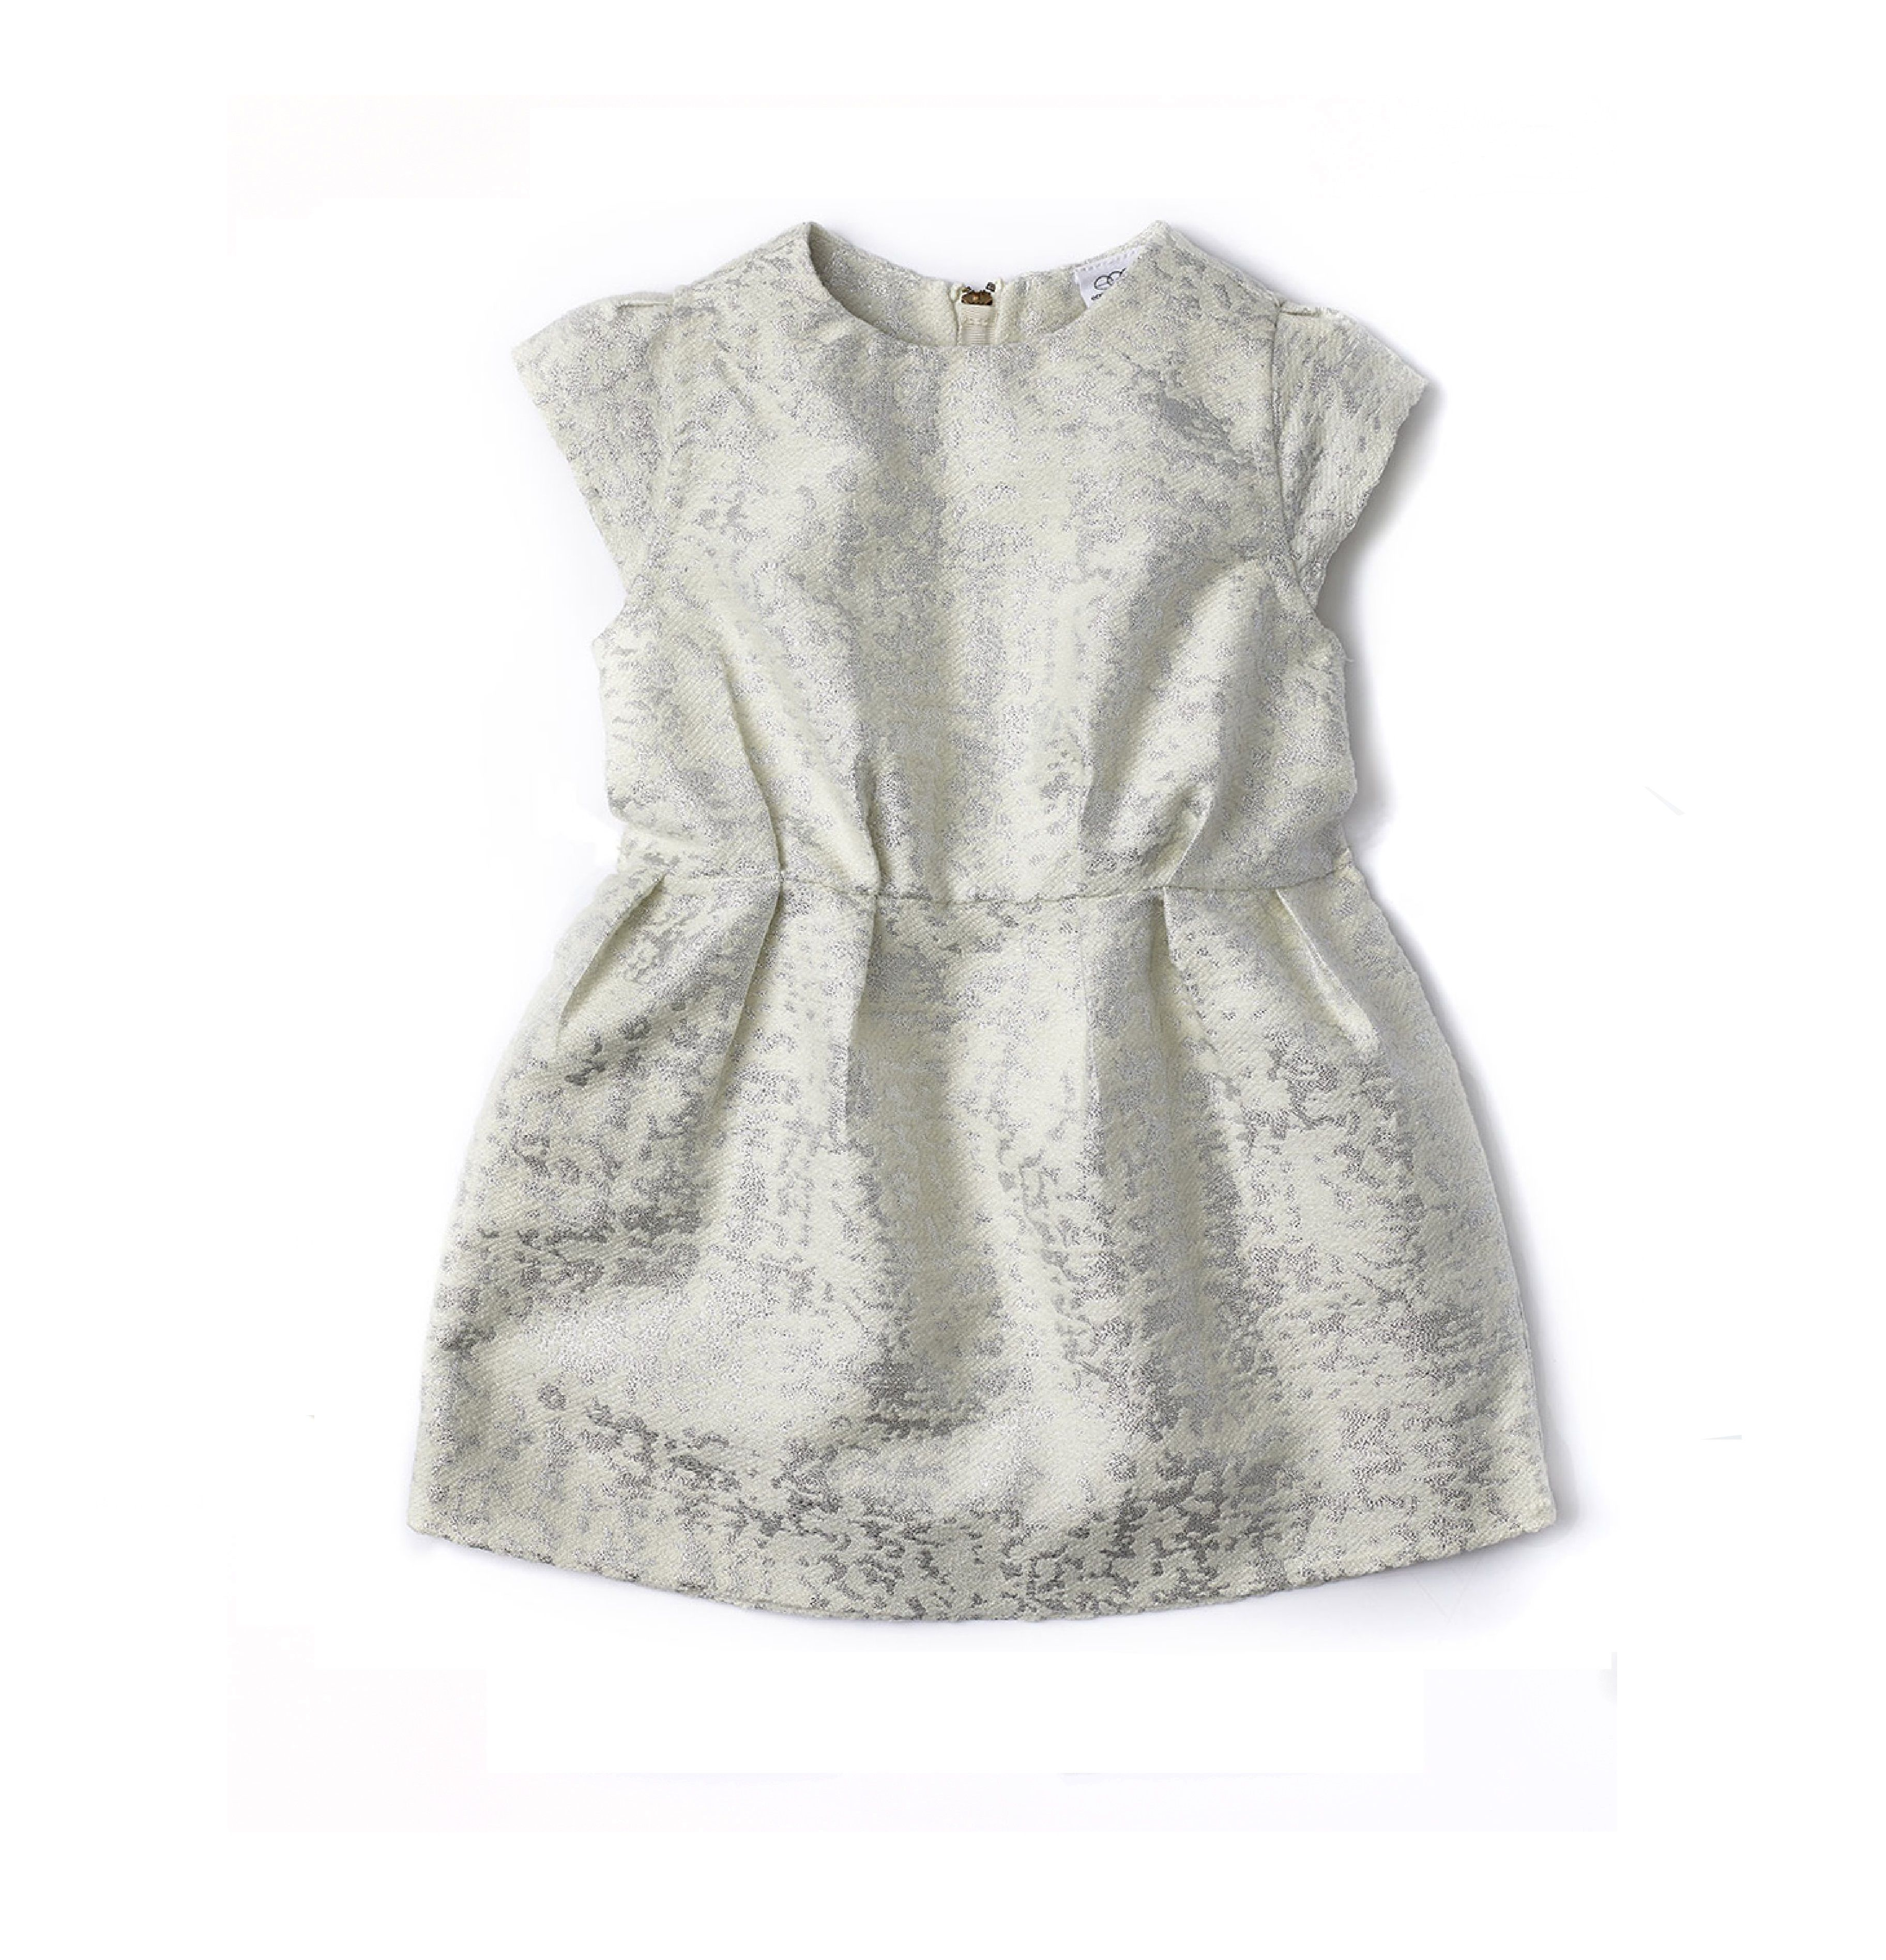 Holiday Shift Dress | egg by susan lazar | http://www.egg-baby.com/shop/holiday-shift-dress/